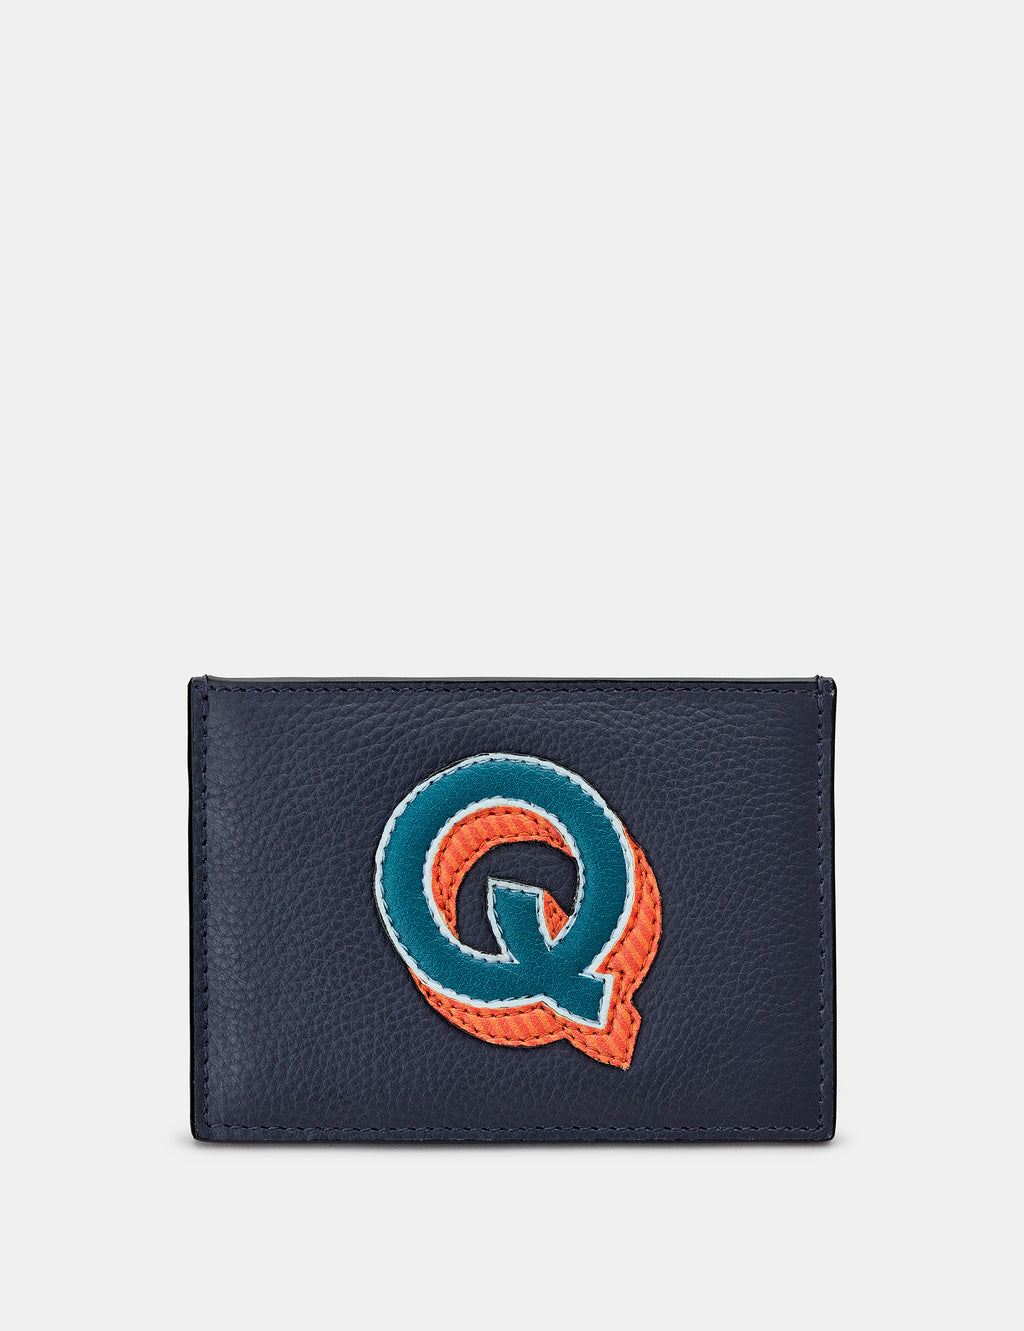 Q Initial Navy Leather Card Holder